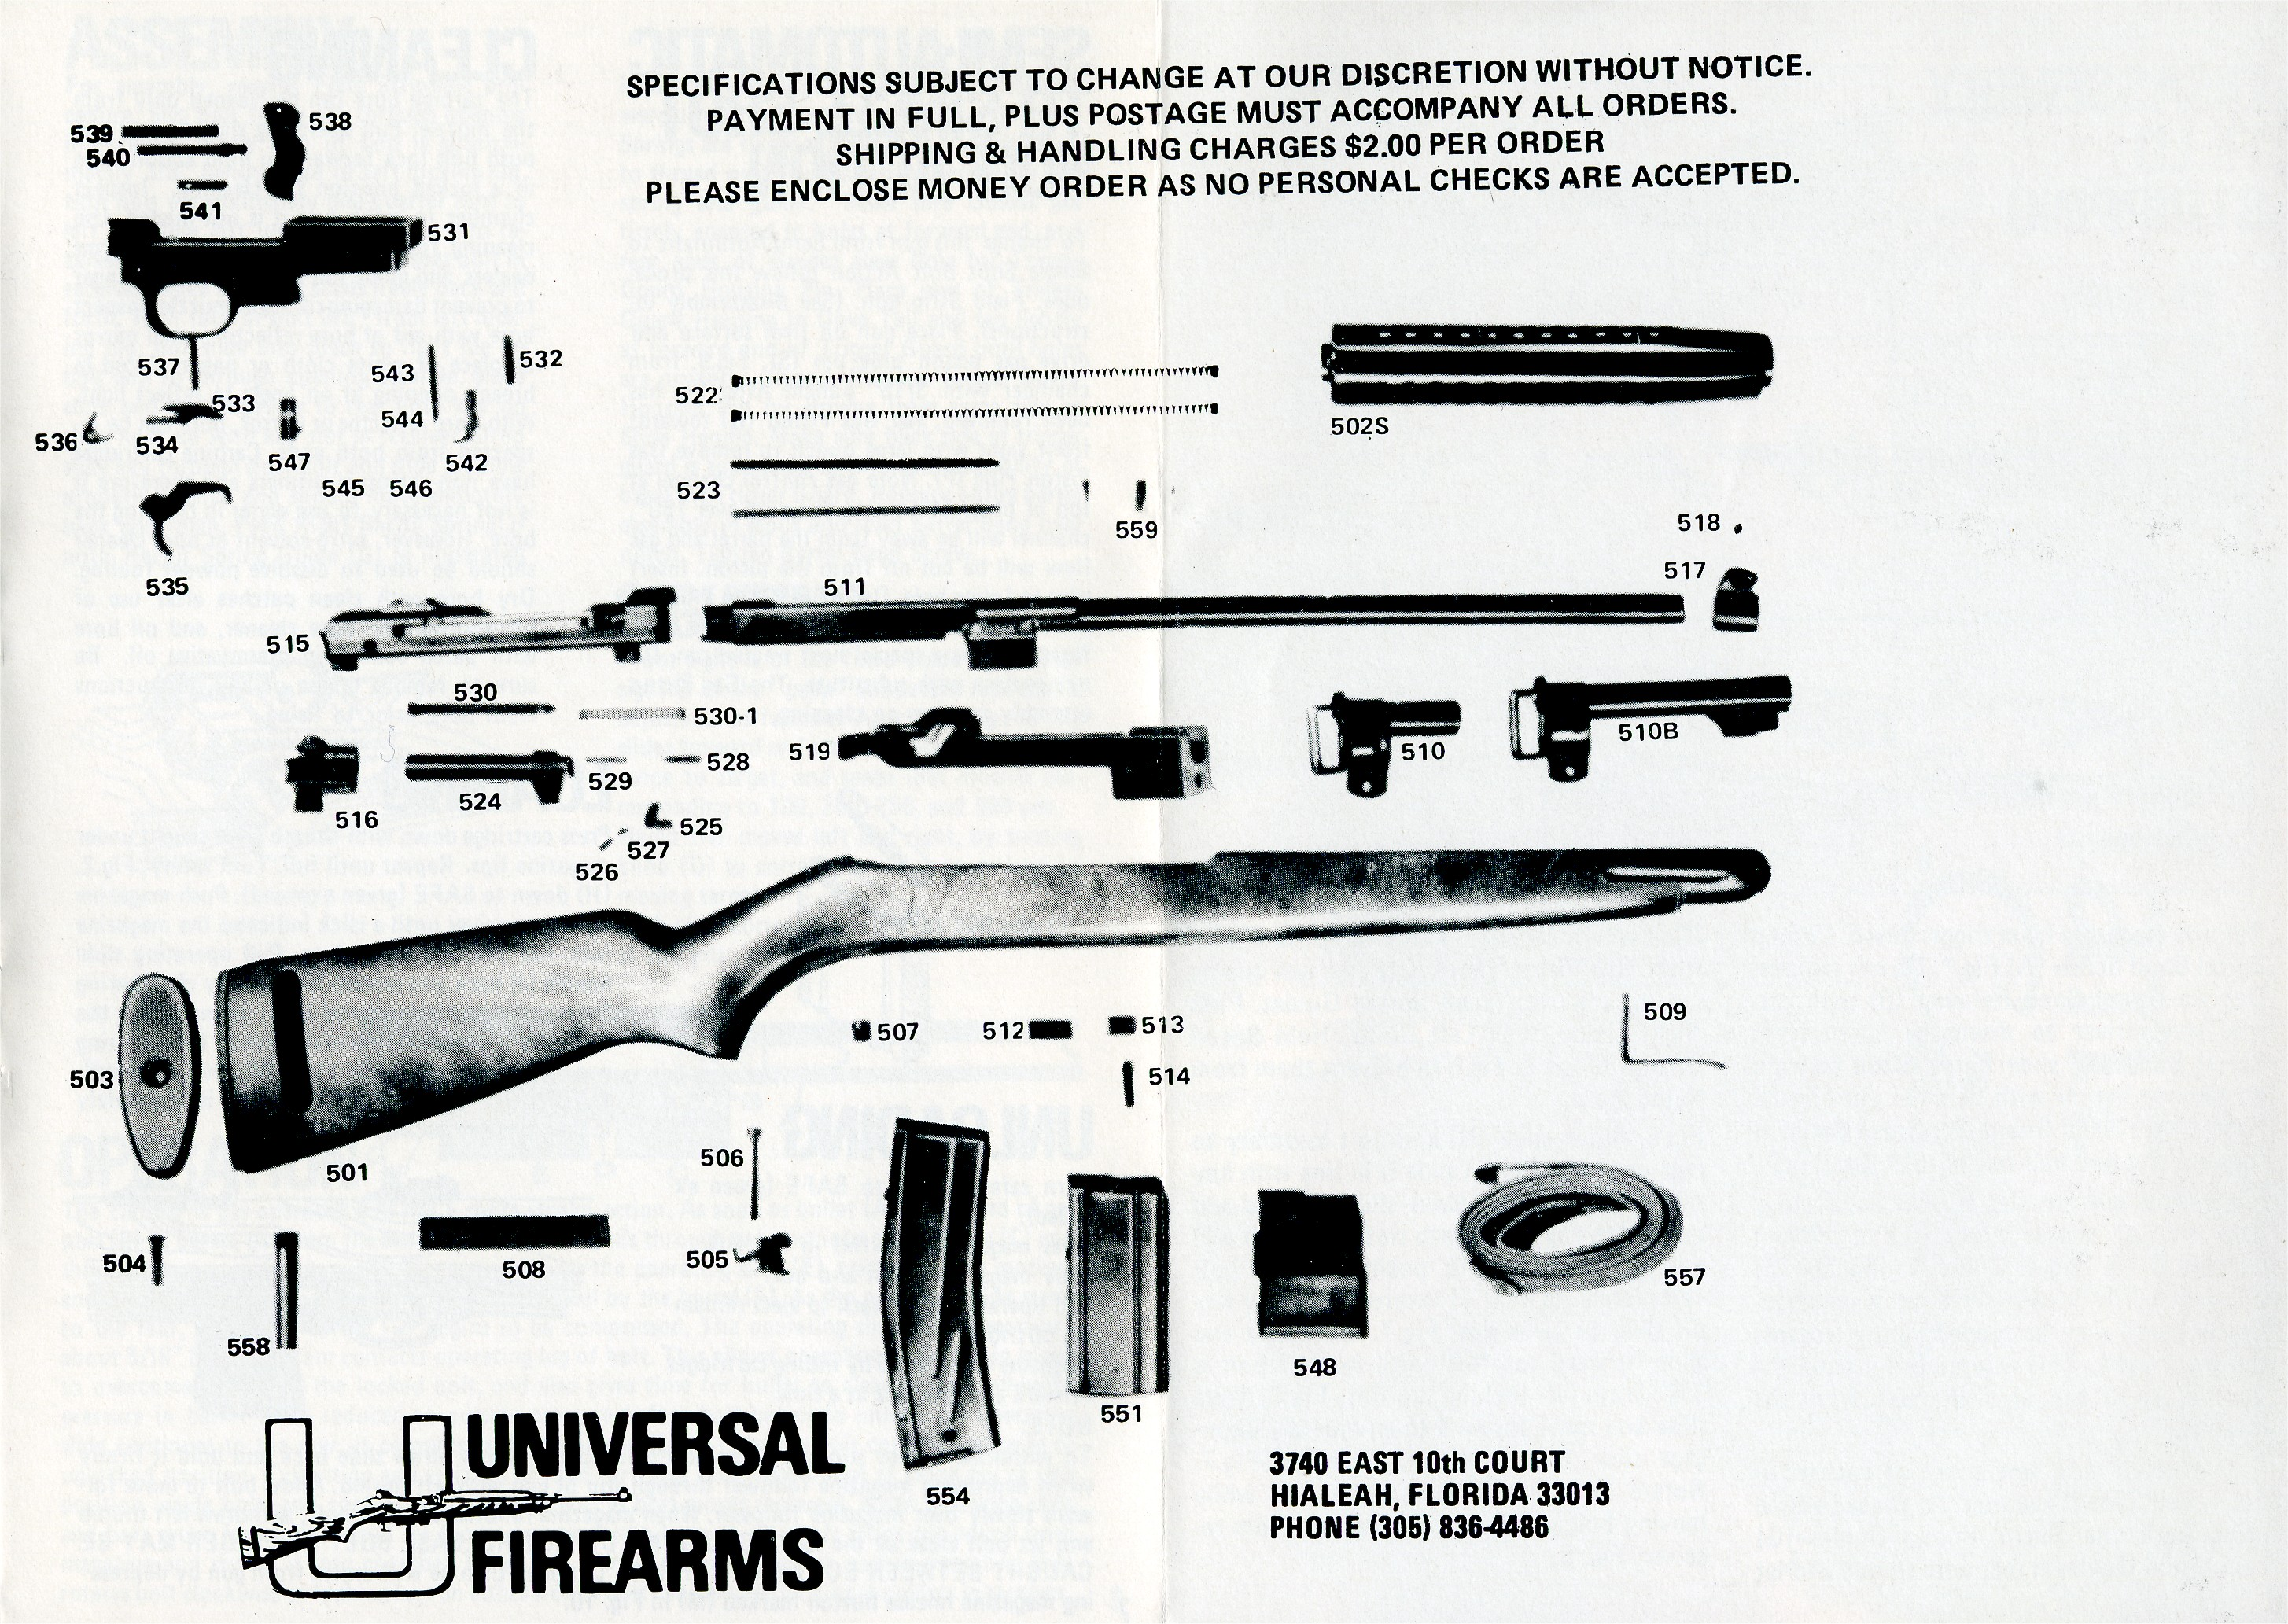 farmall super h parts diagram universal m1 carbine manual m1 carbine parts diagram